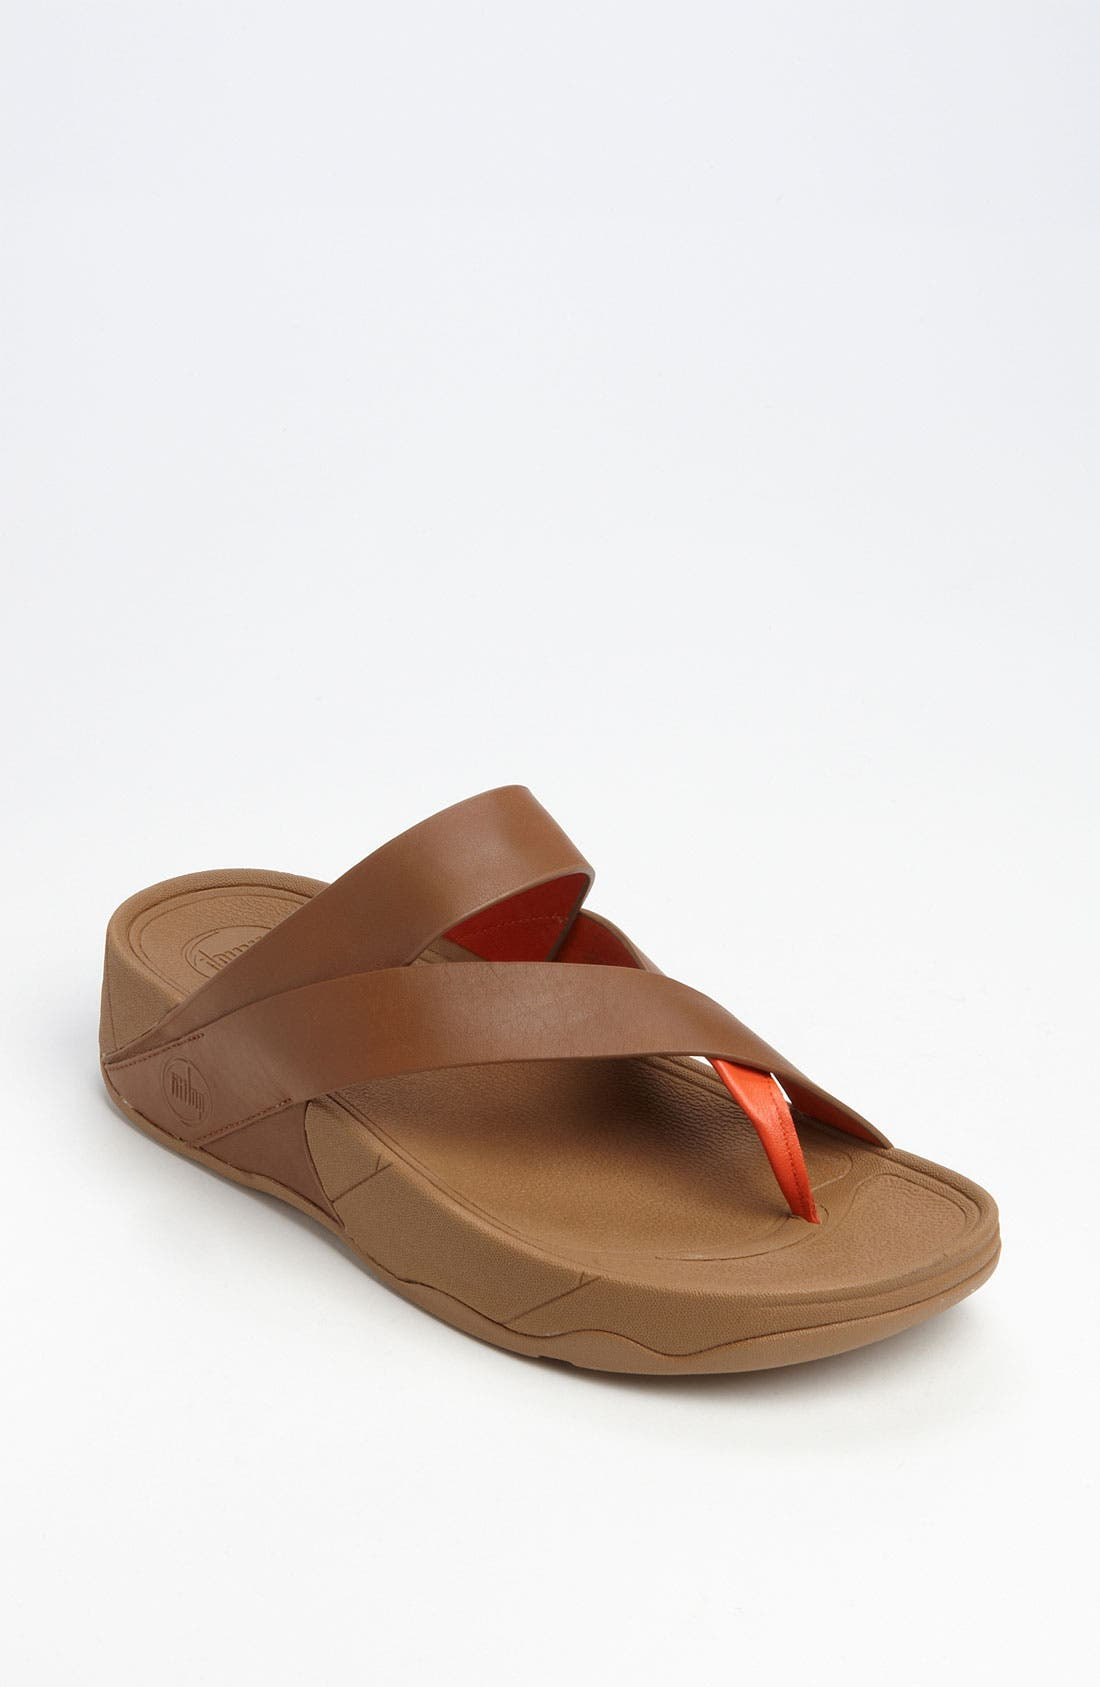 Main Image - FitFlop Sling Sandal (Women)